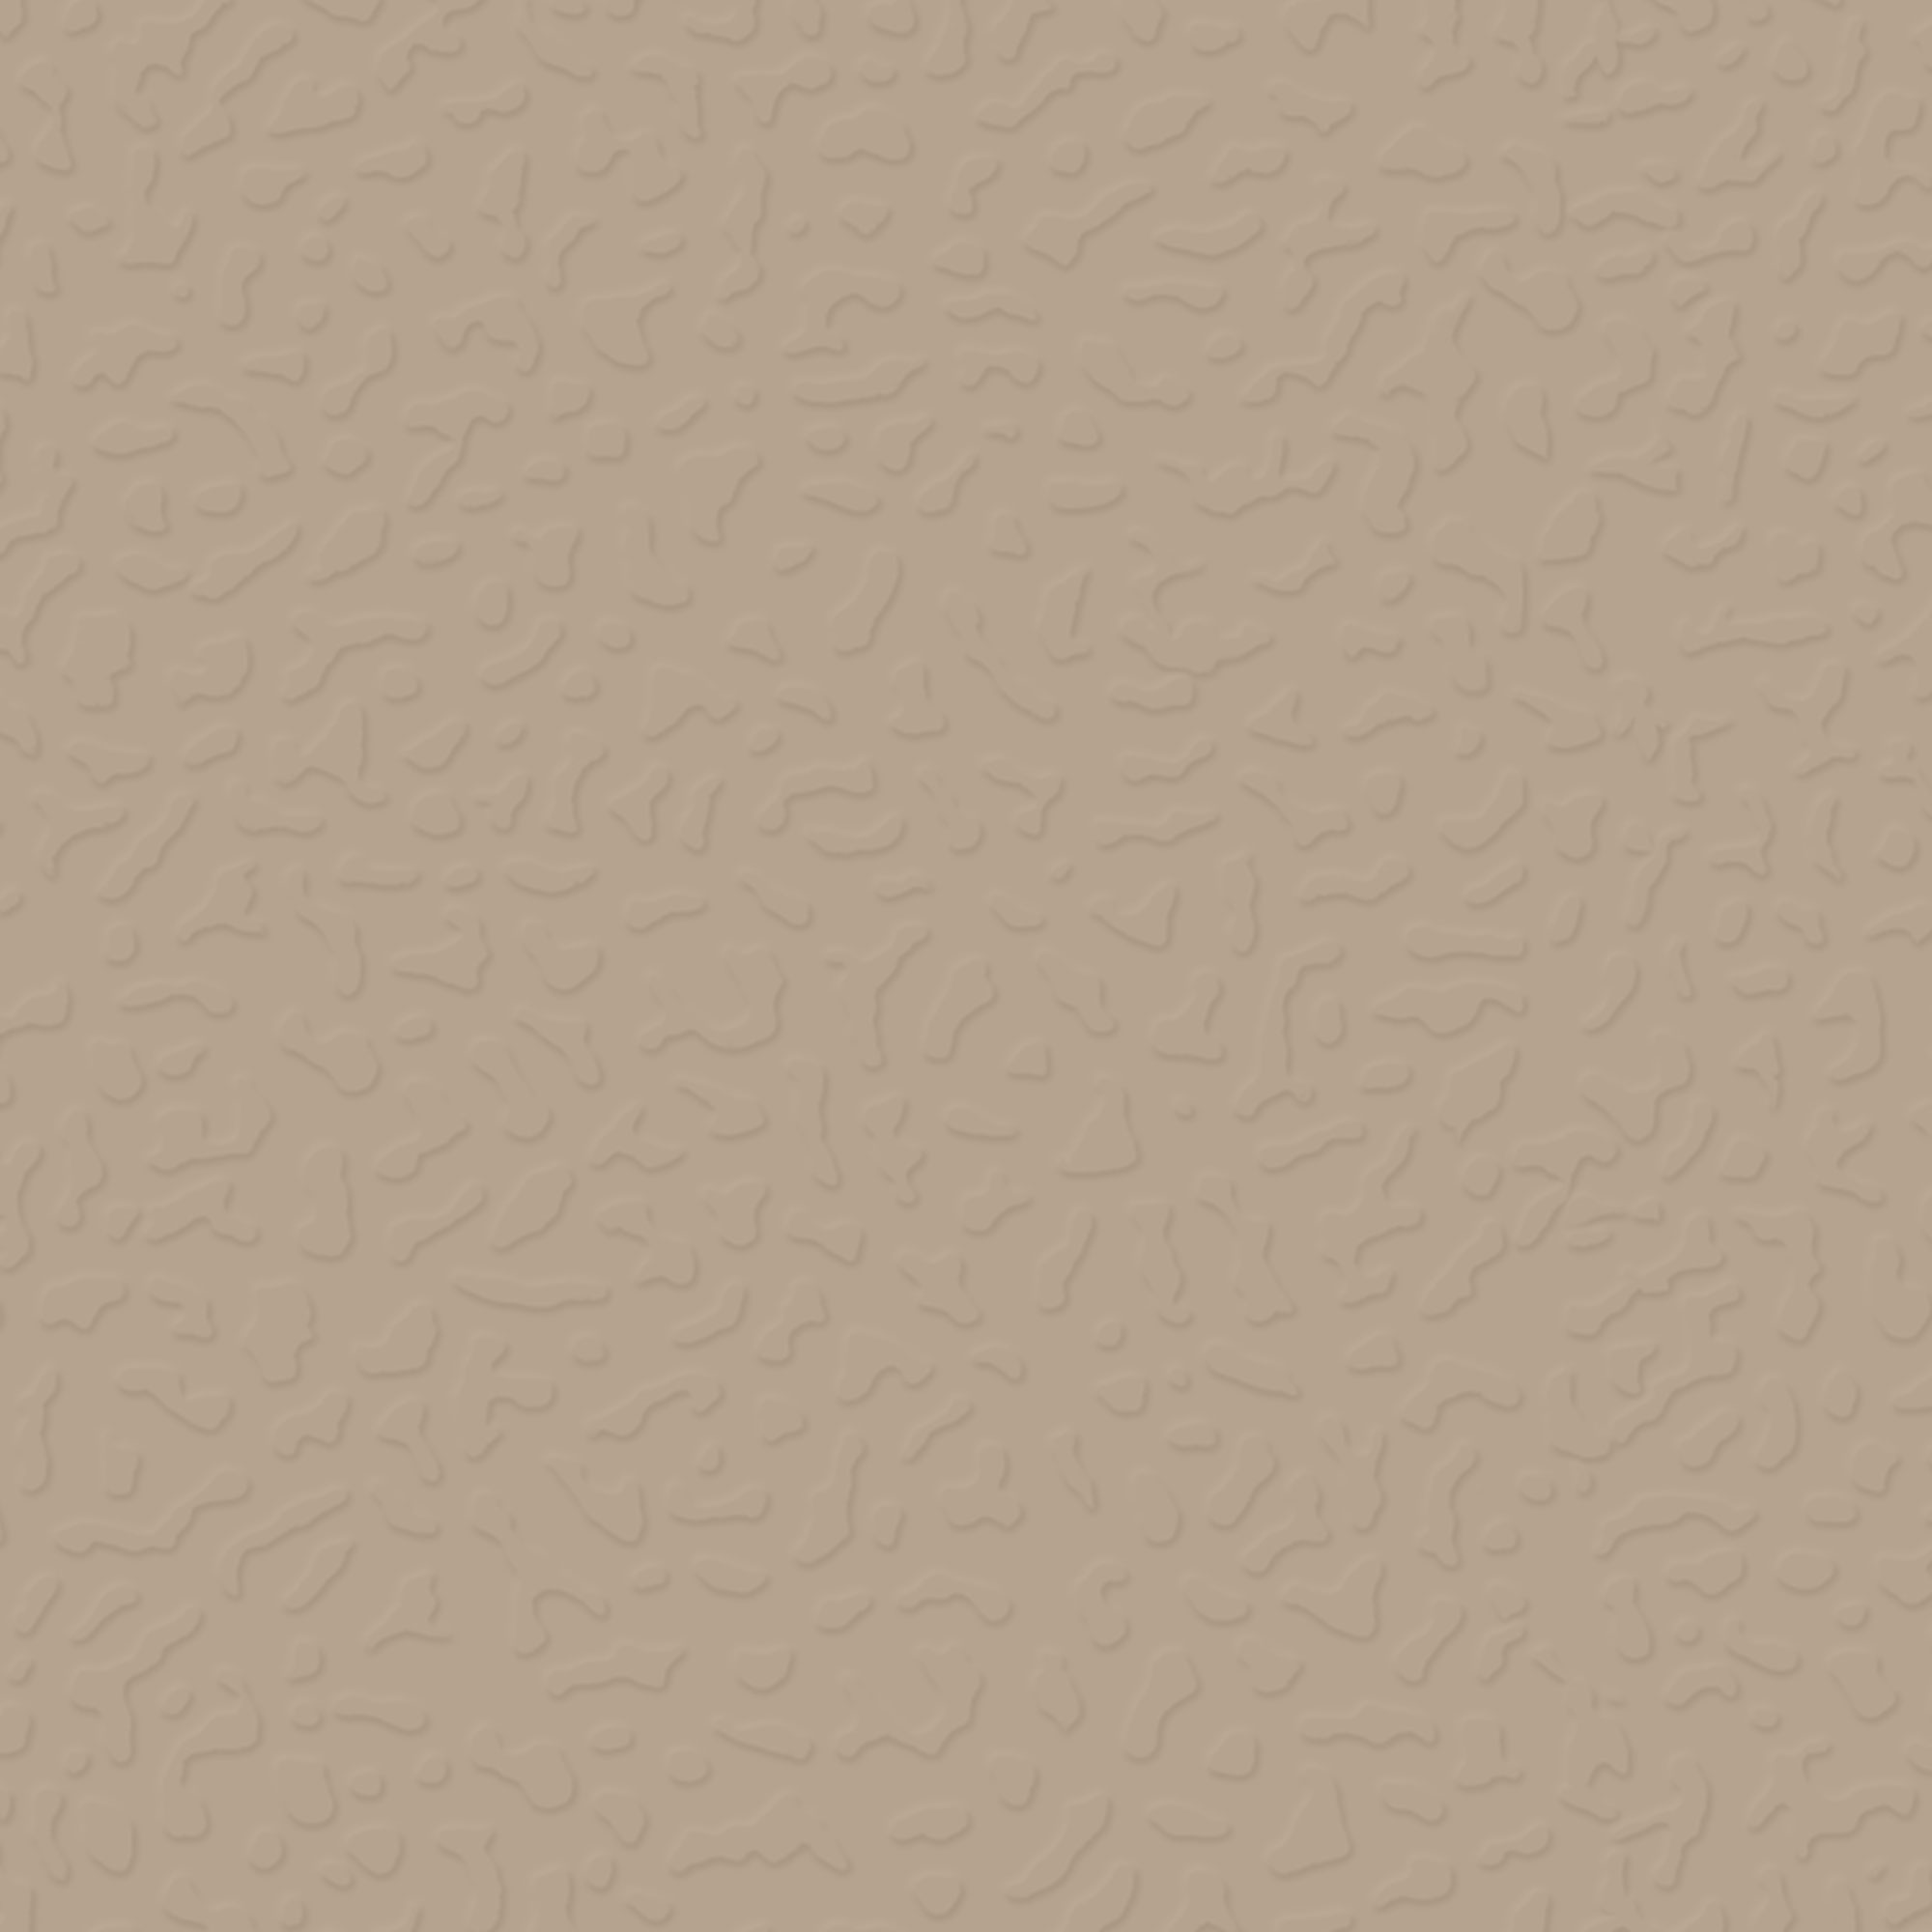 Roppe Rubber Tile 900 - Textured Design (993) Ivory LB996198